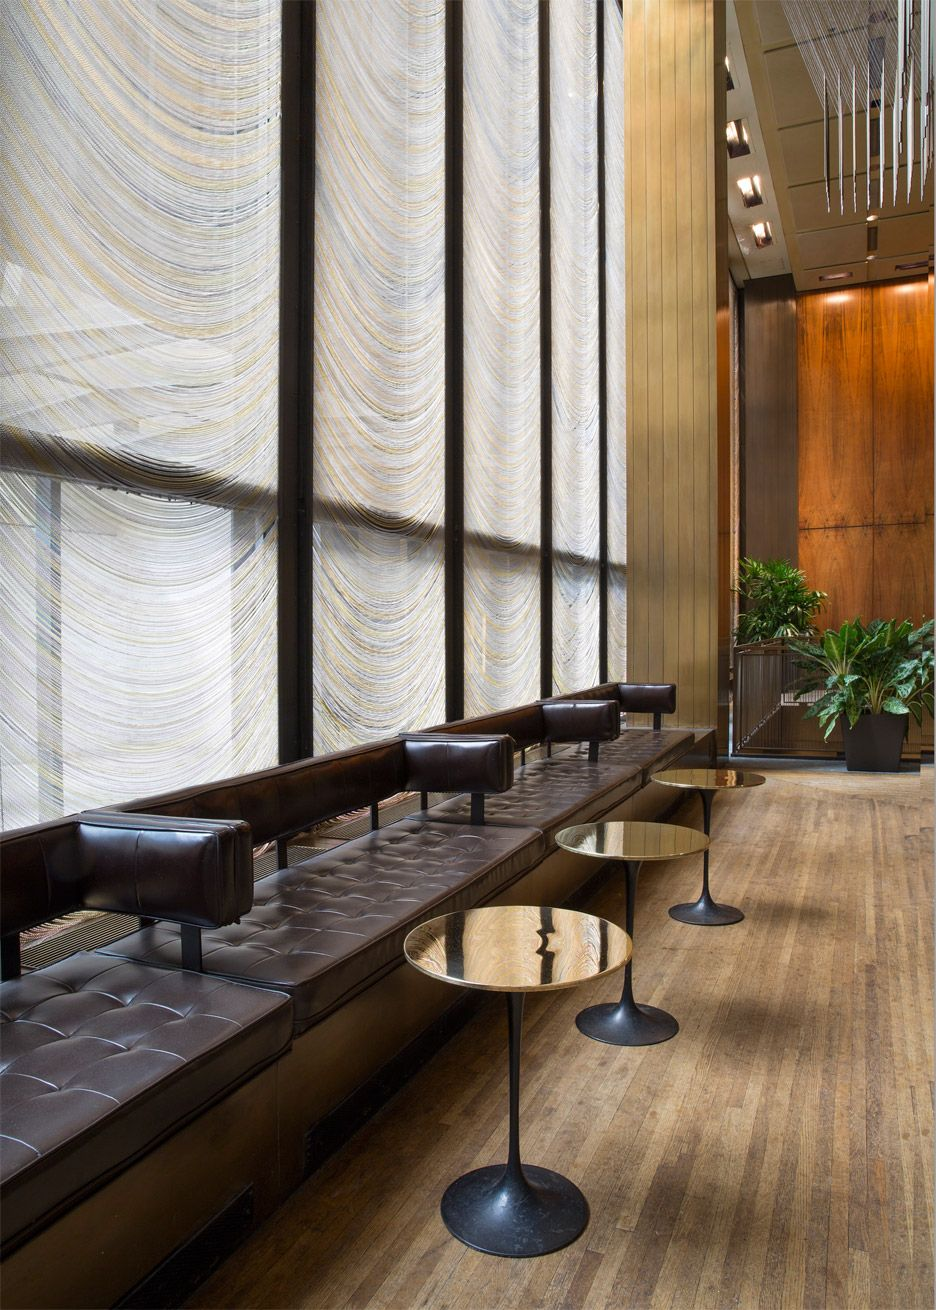 Four seasons restaurant by philip johnson and mies van der